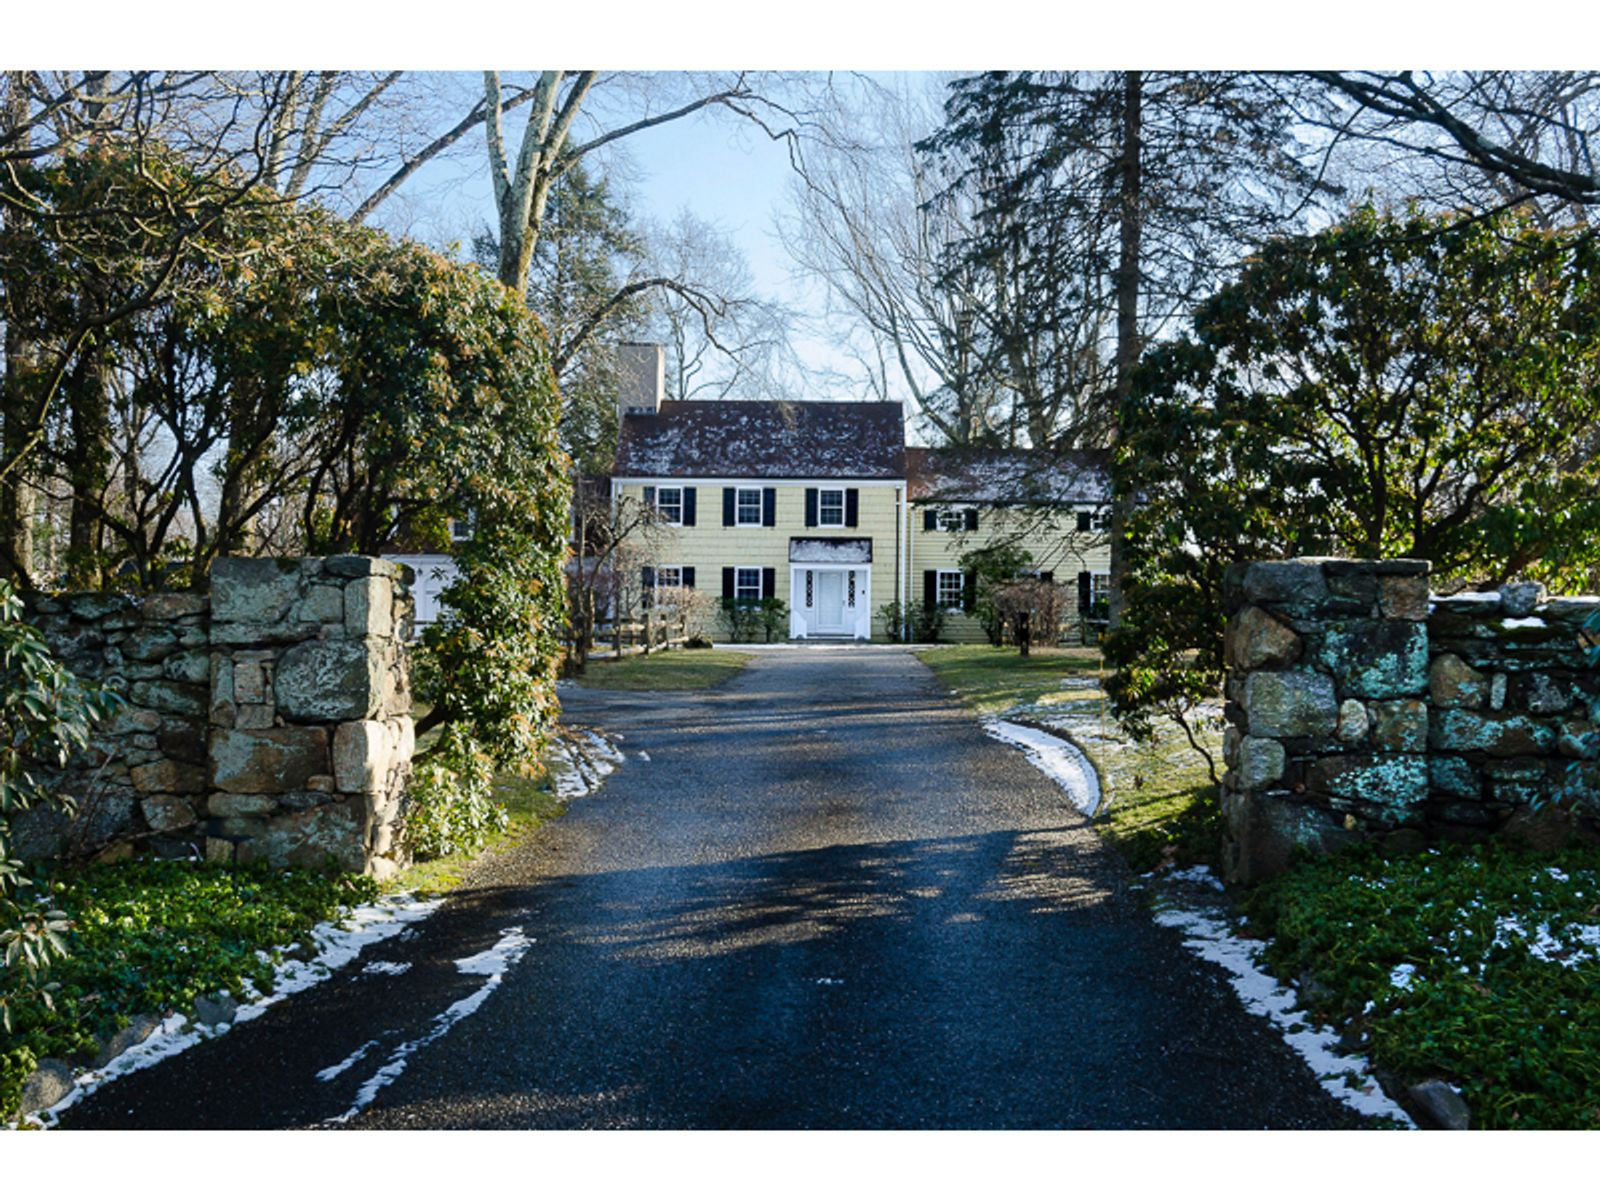 Quintessential Country House, Greenwich CT Single Family Home - Greenwich Real Estate